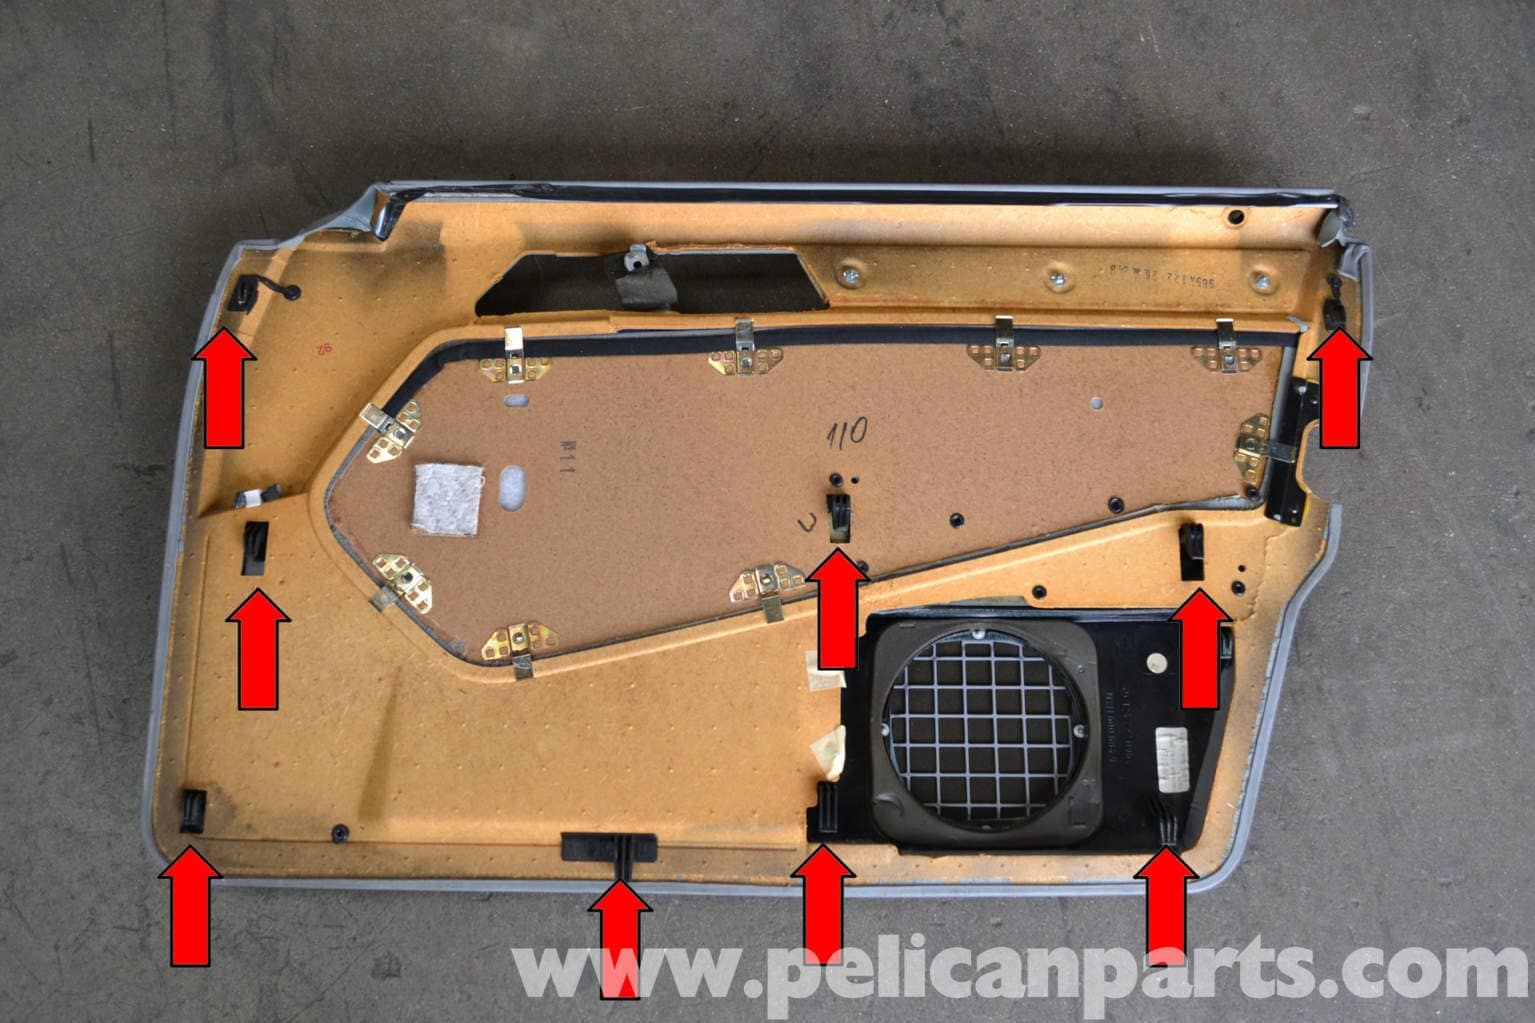 Mercedes benz w124 front door panel removal 1986 1995 e for Mercedes benz w124 parts